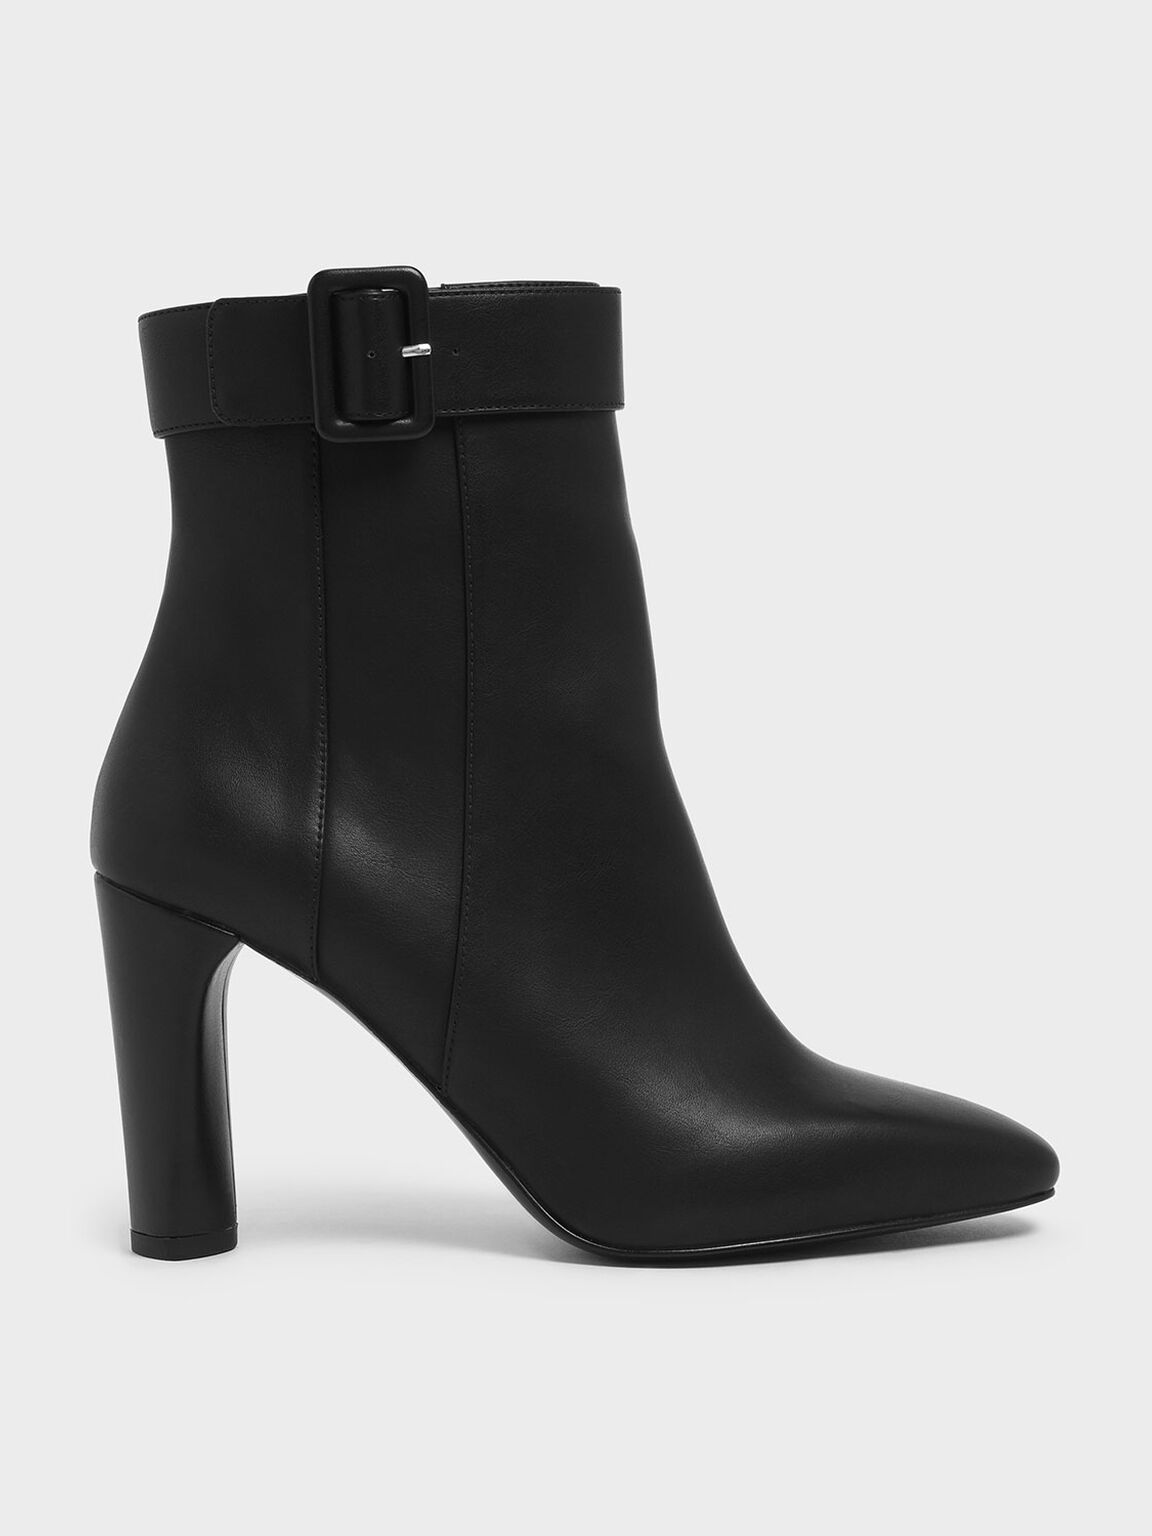 Buckle Strap Cylindrical Heel Ankle Boots, Black, hi-res